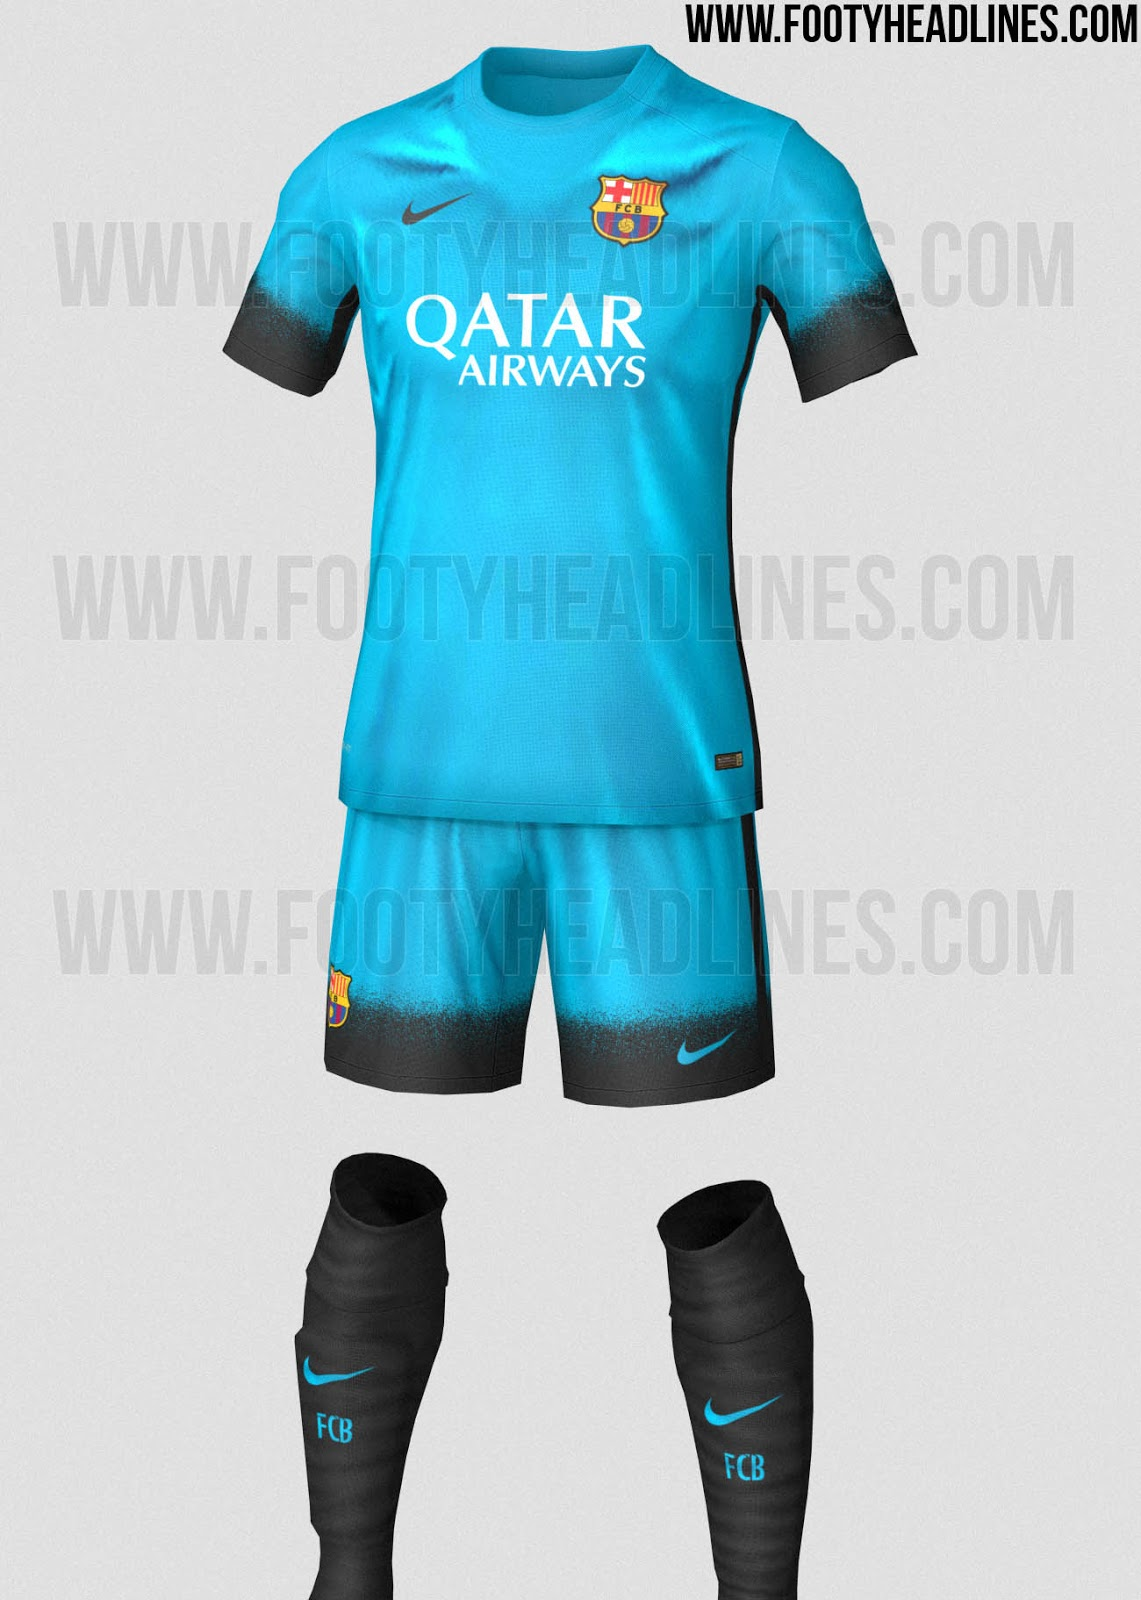 barcelona-15-16-third-kit%2B%25283%2529.